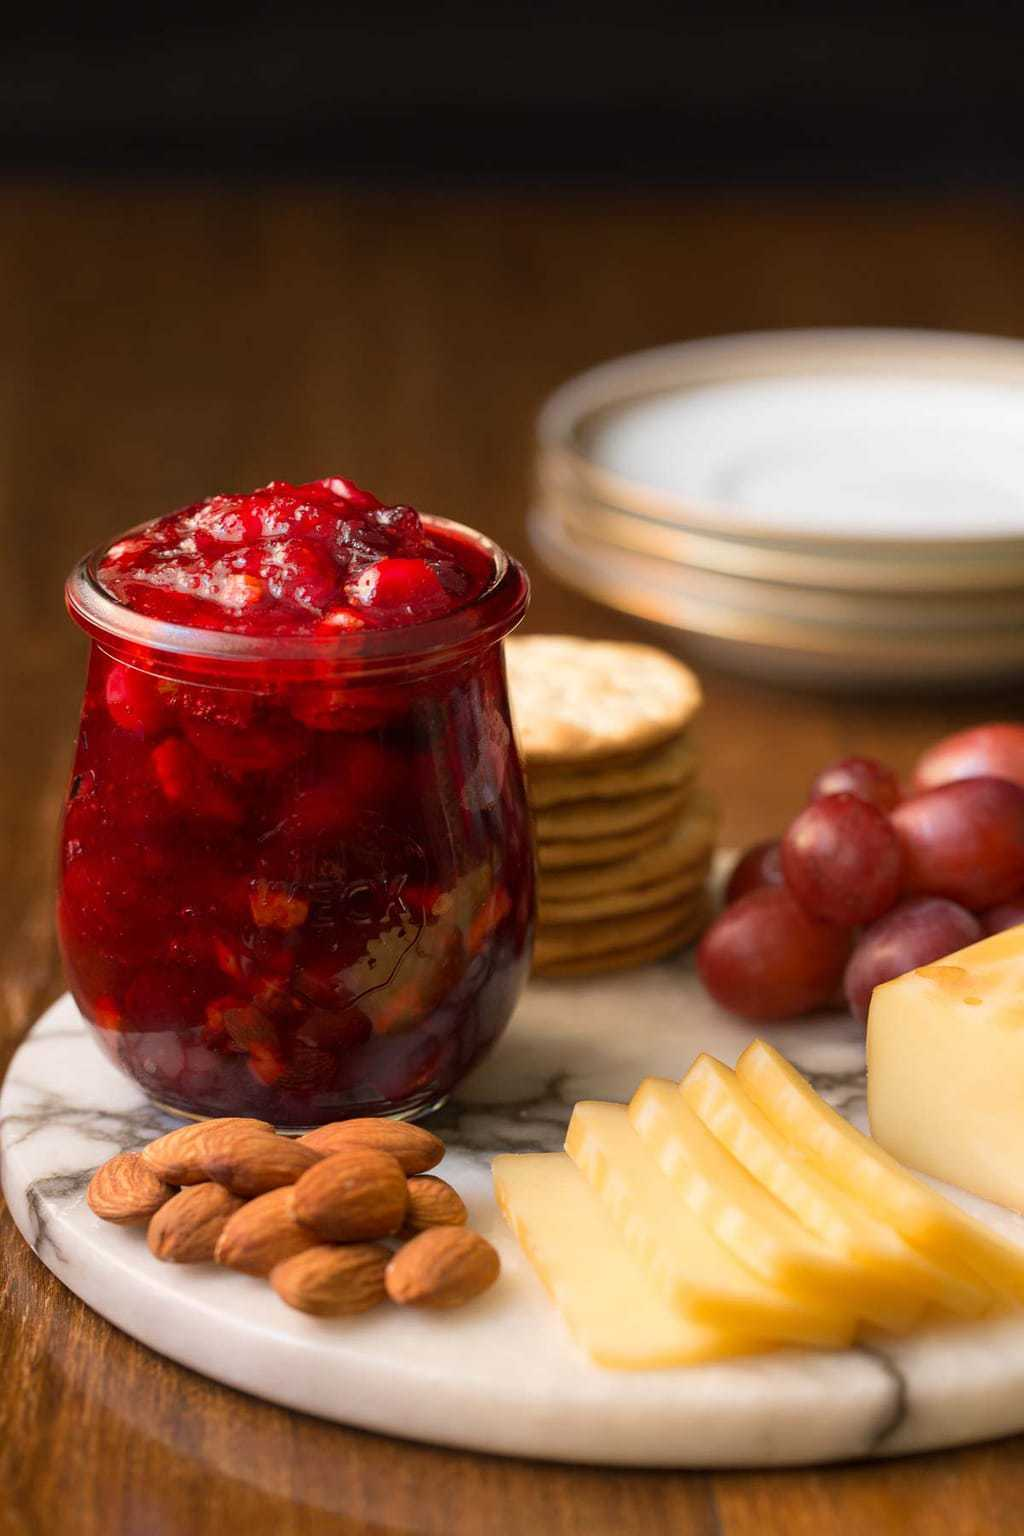 Vertical picture of Cranberry Clementine Conserves in a glass jar with cheese and nuts